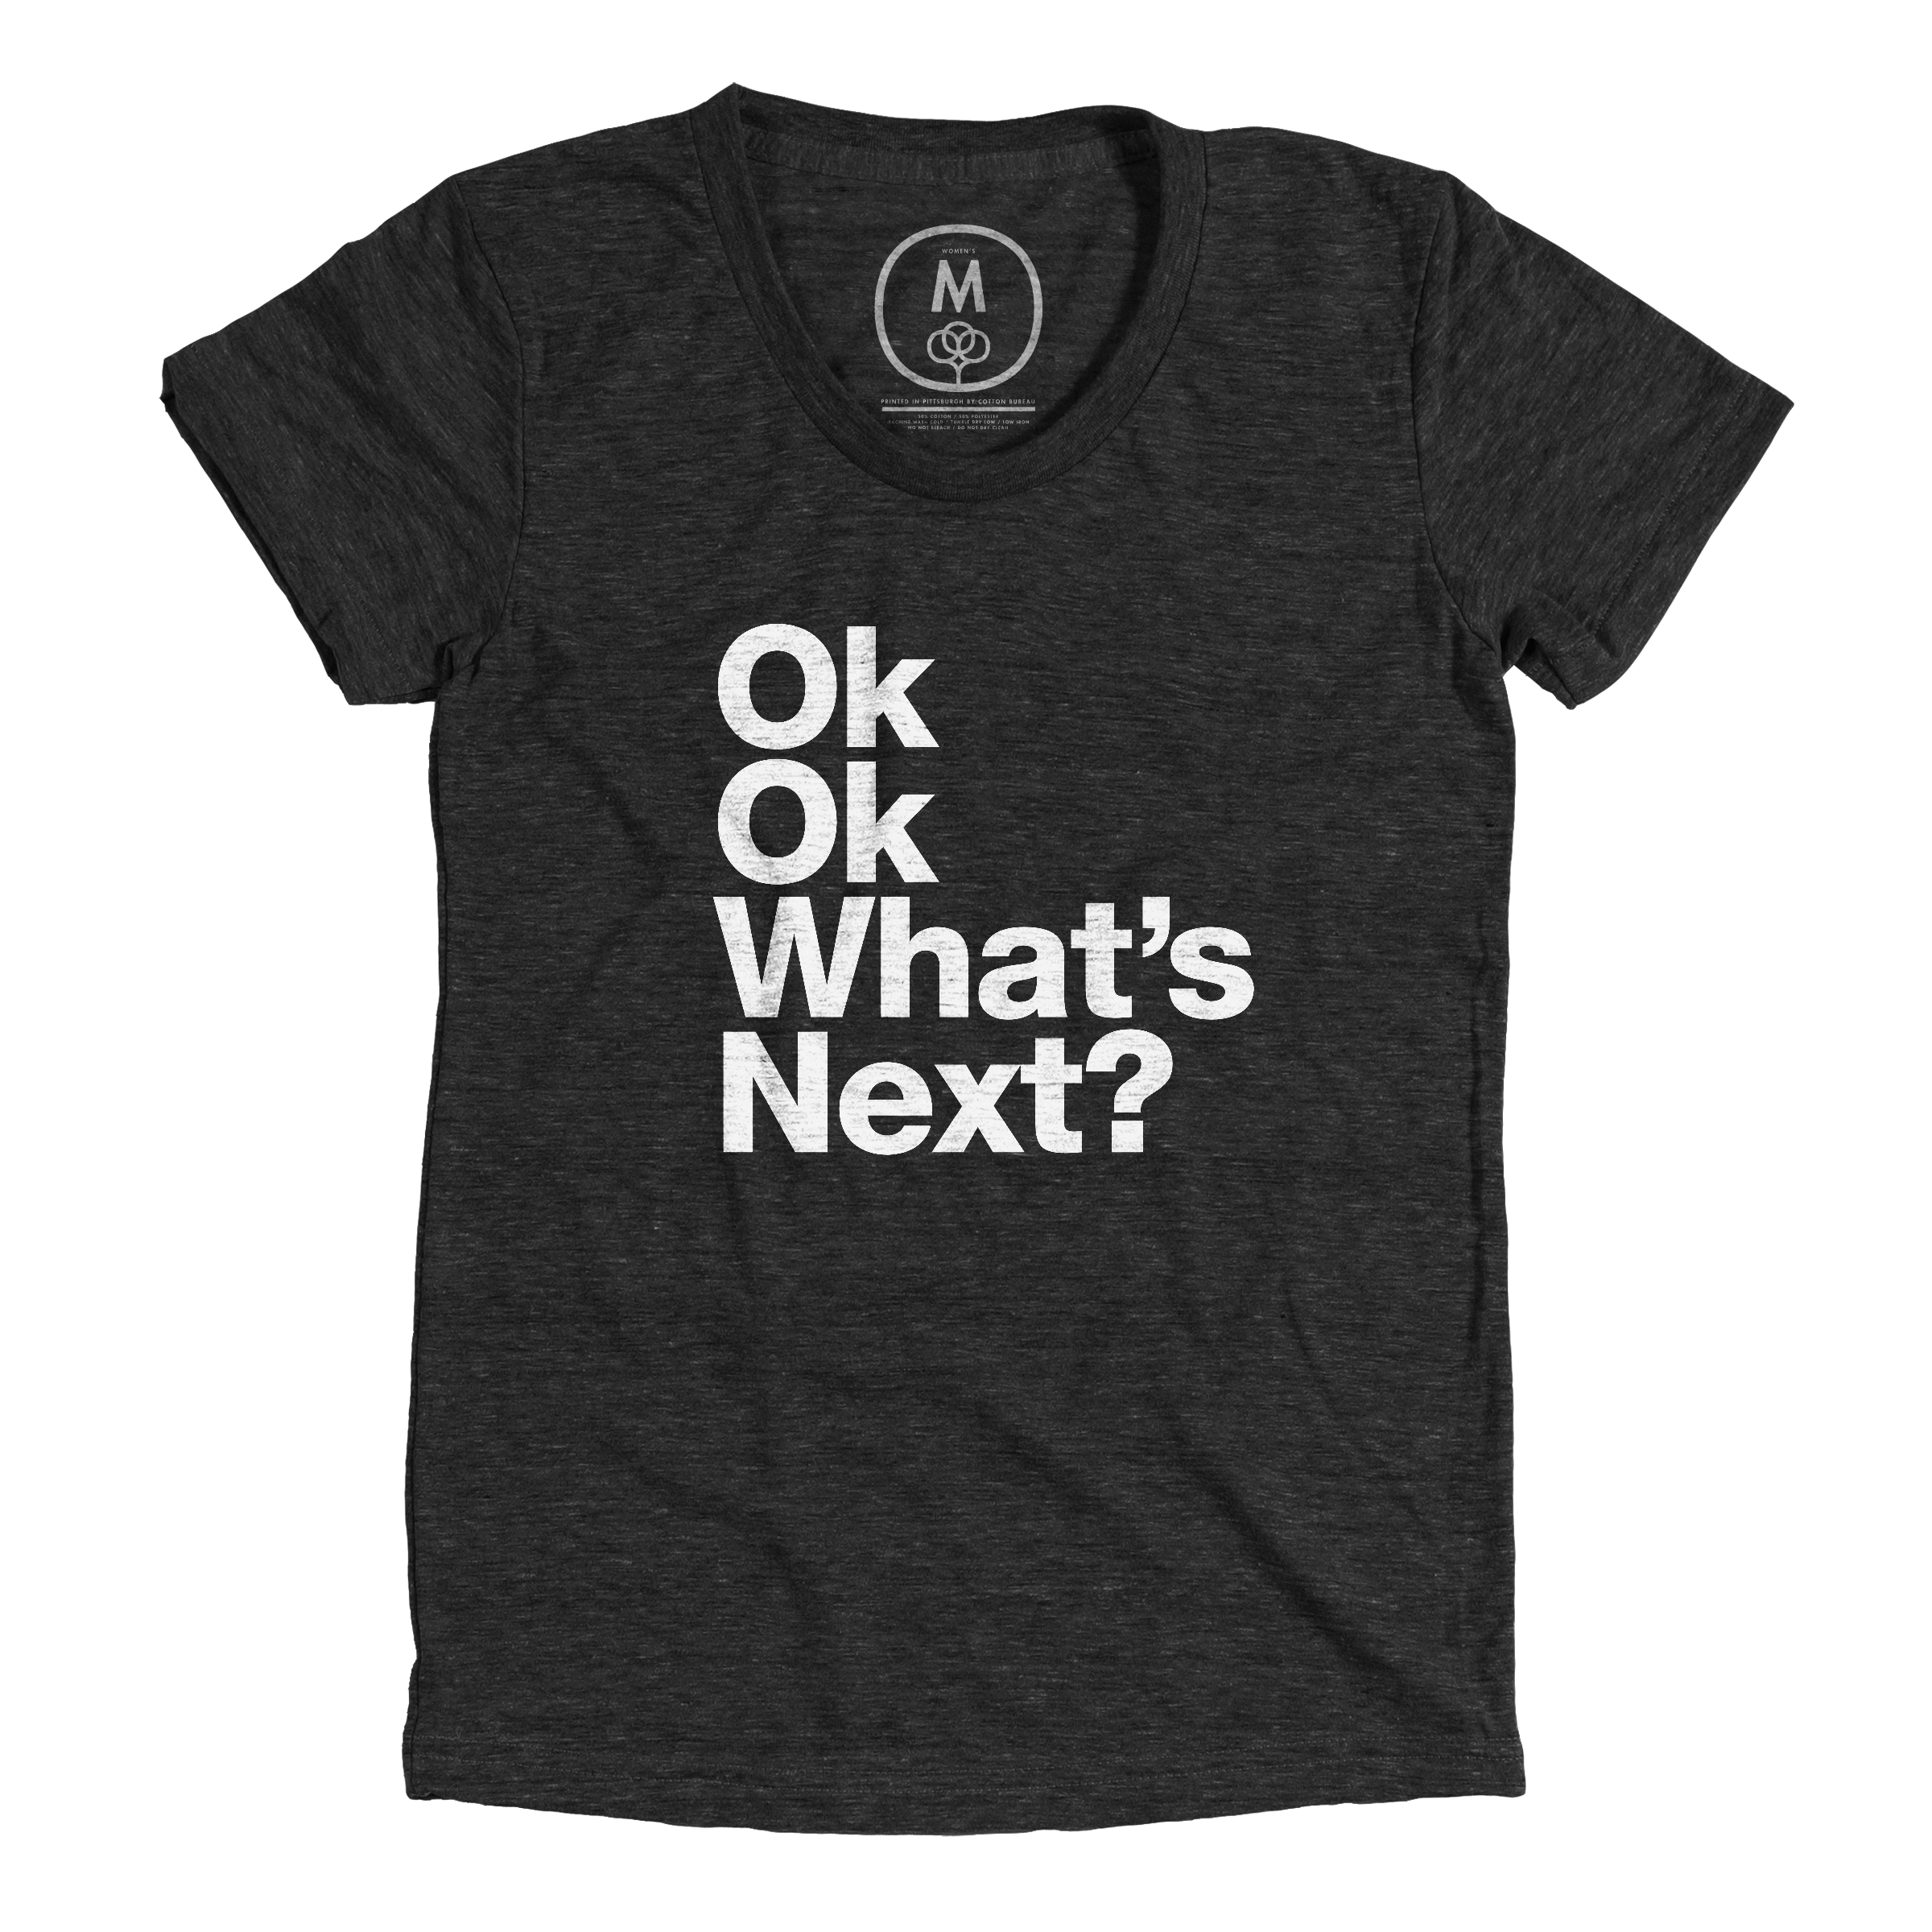 What's Next? (Black & White) Vintage Black (Women's)